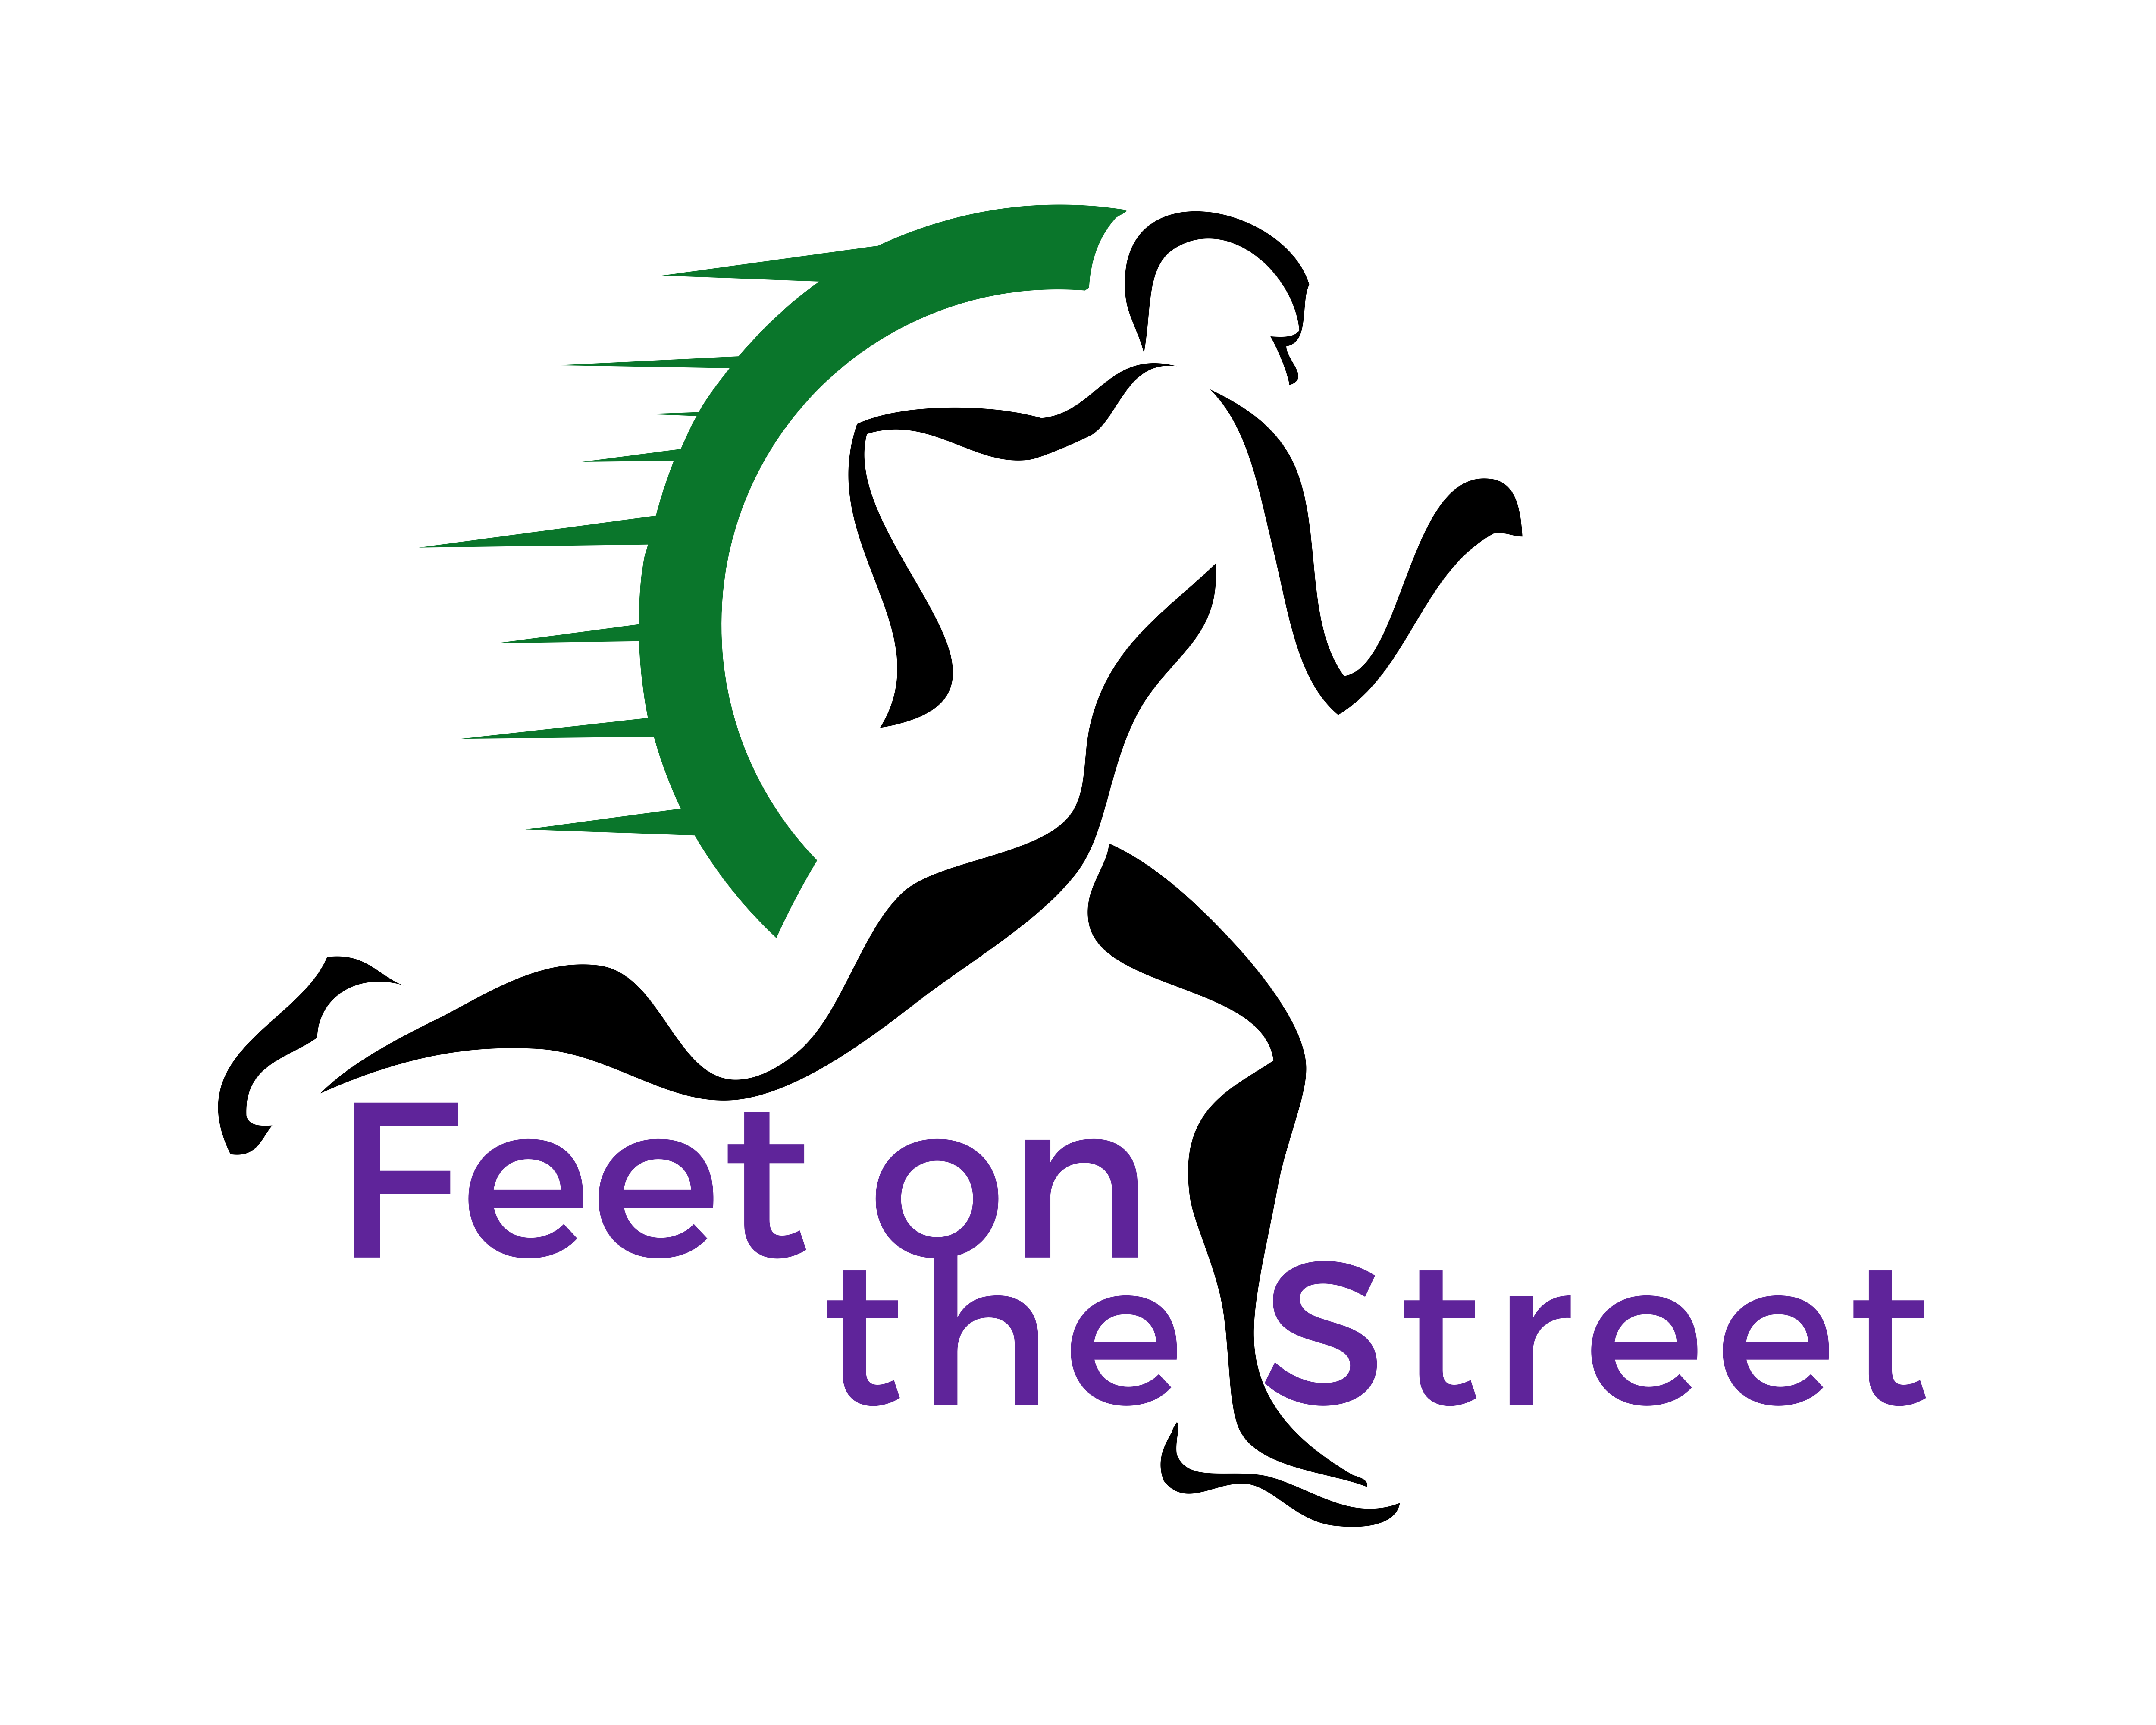 Feet on the Street 2K Walk & 5K Run 2017